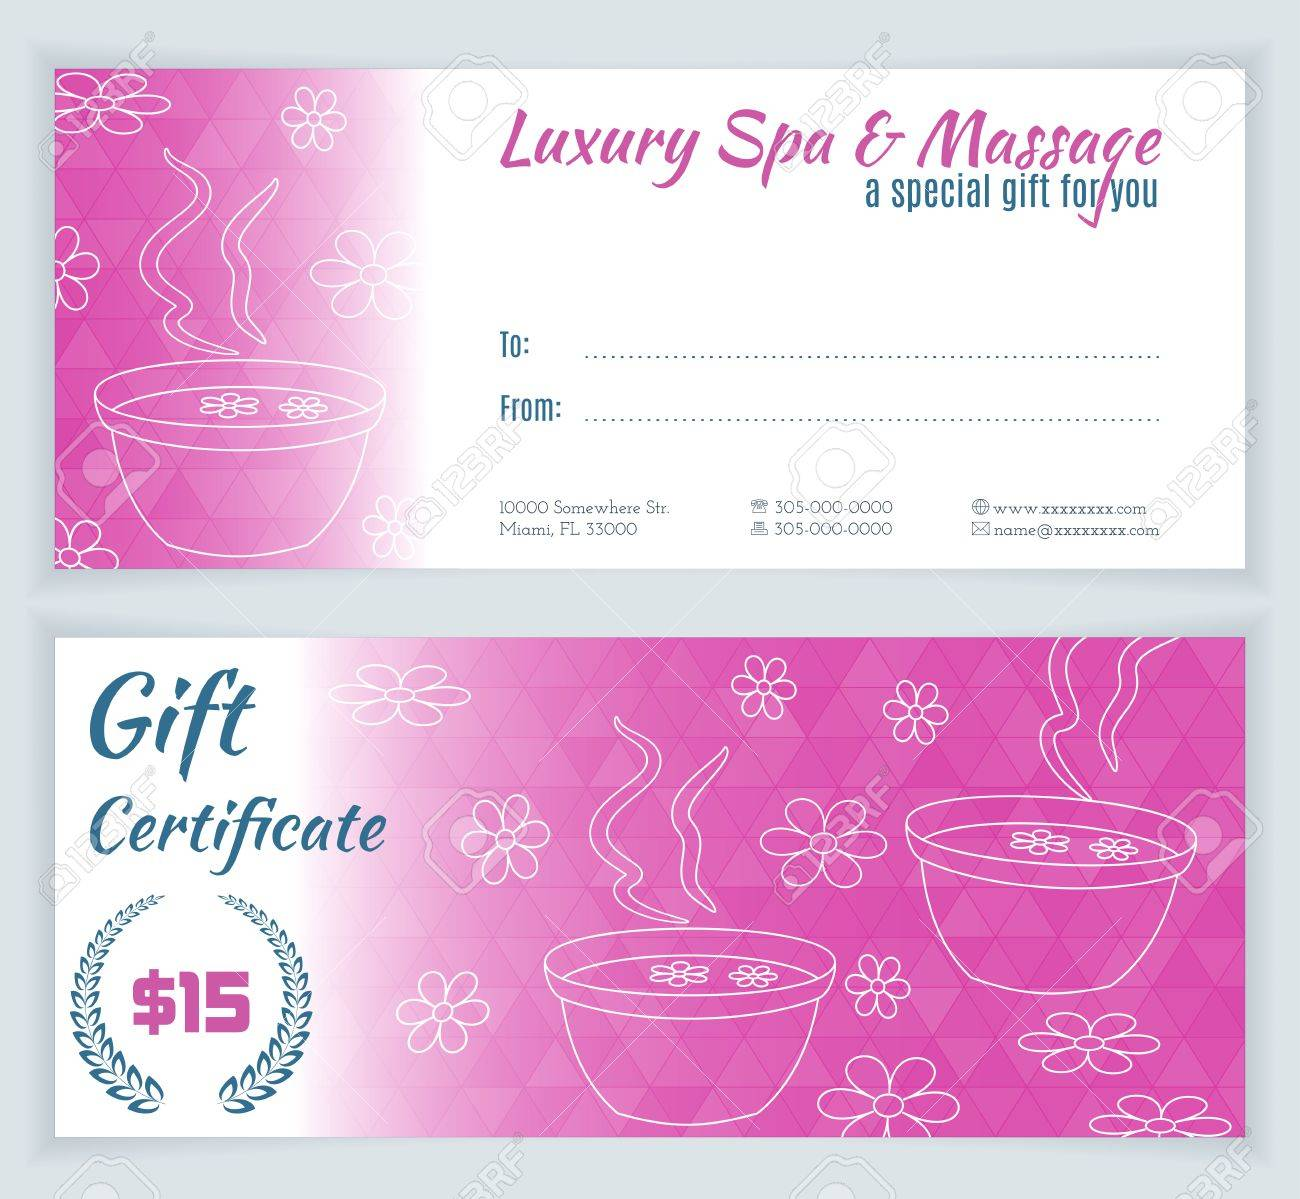 Spa Massage Gift Certificate Template With Hand Drawn Foot Bath - Massage gift certificate templates